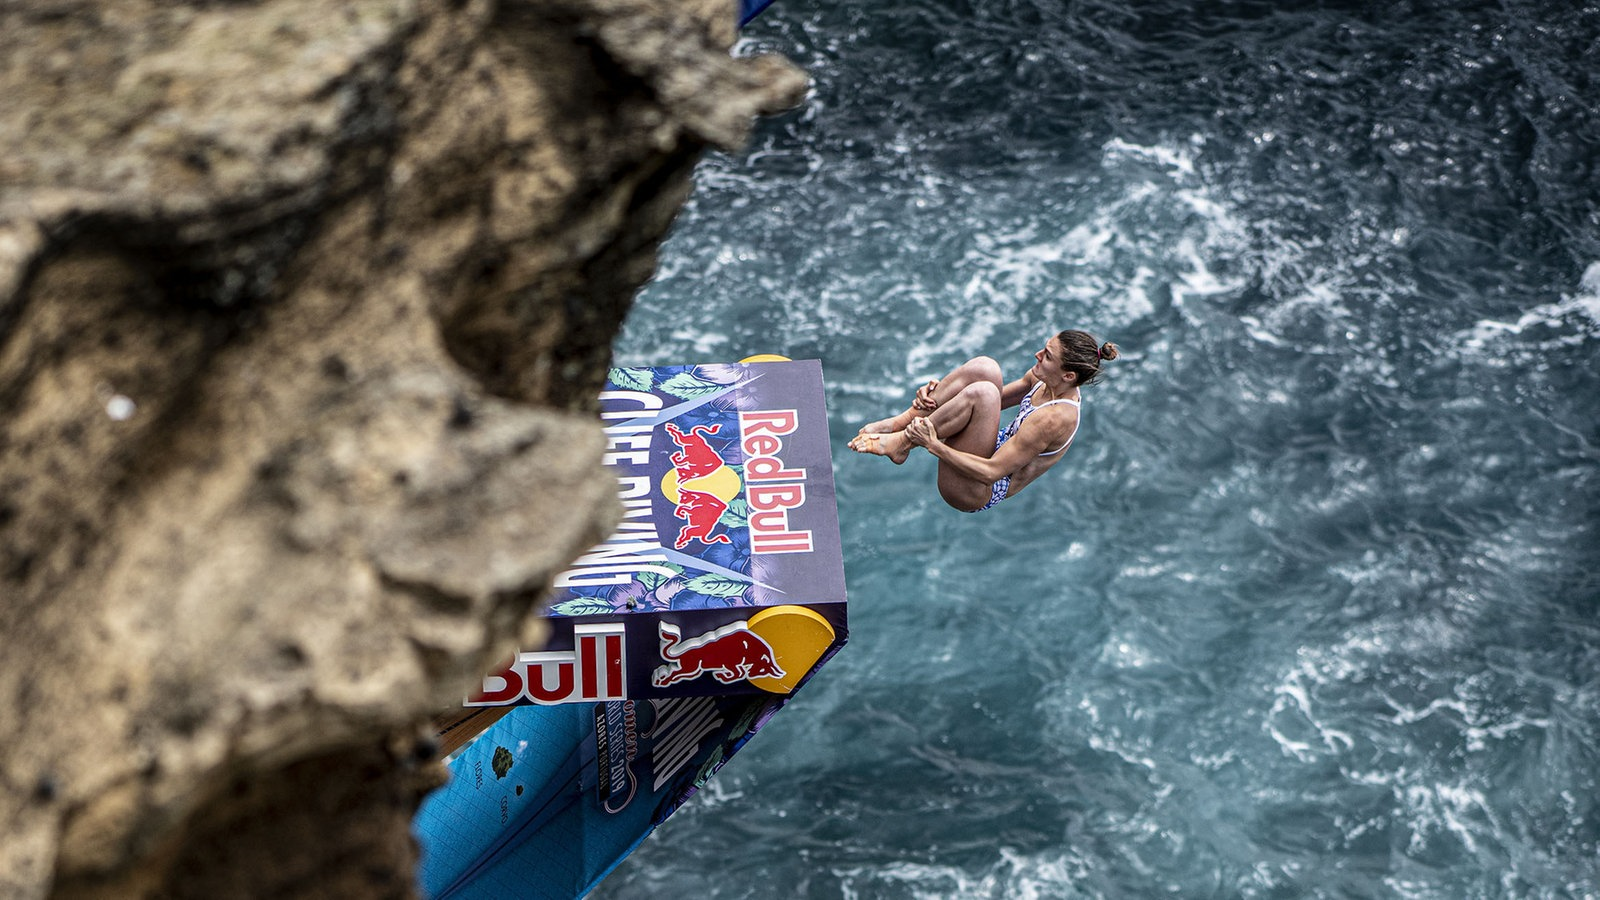 Diver Cliff Iris Schmidbauer - stuck at the other end of the world - general - more sport